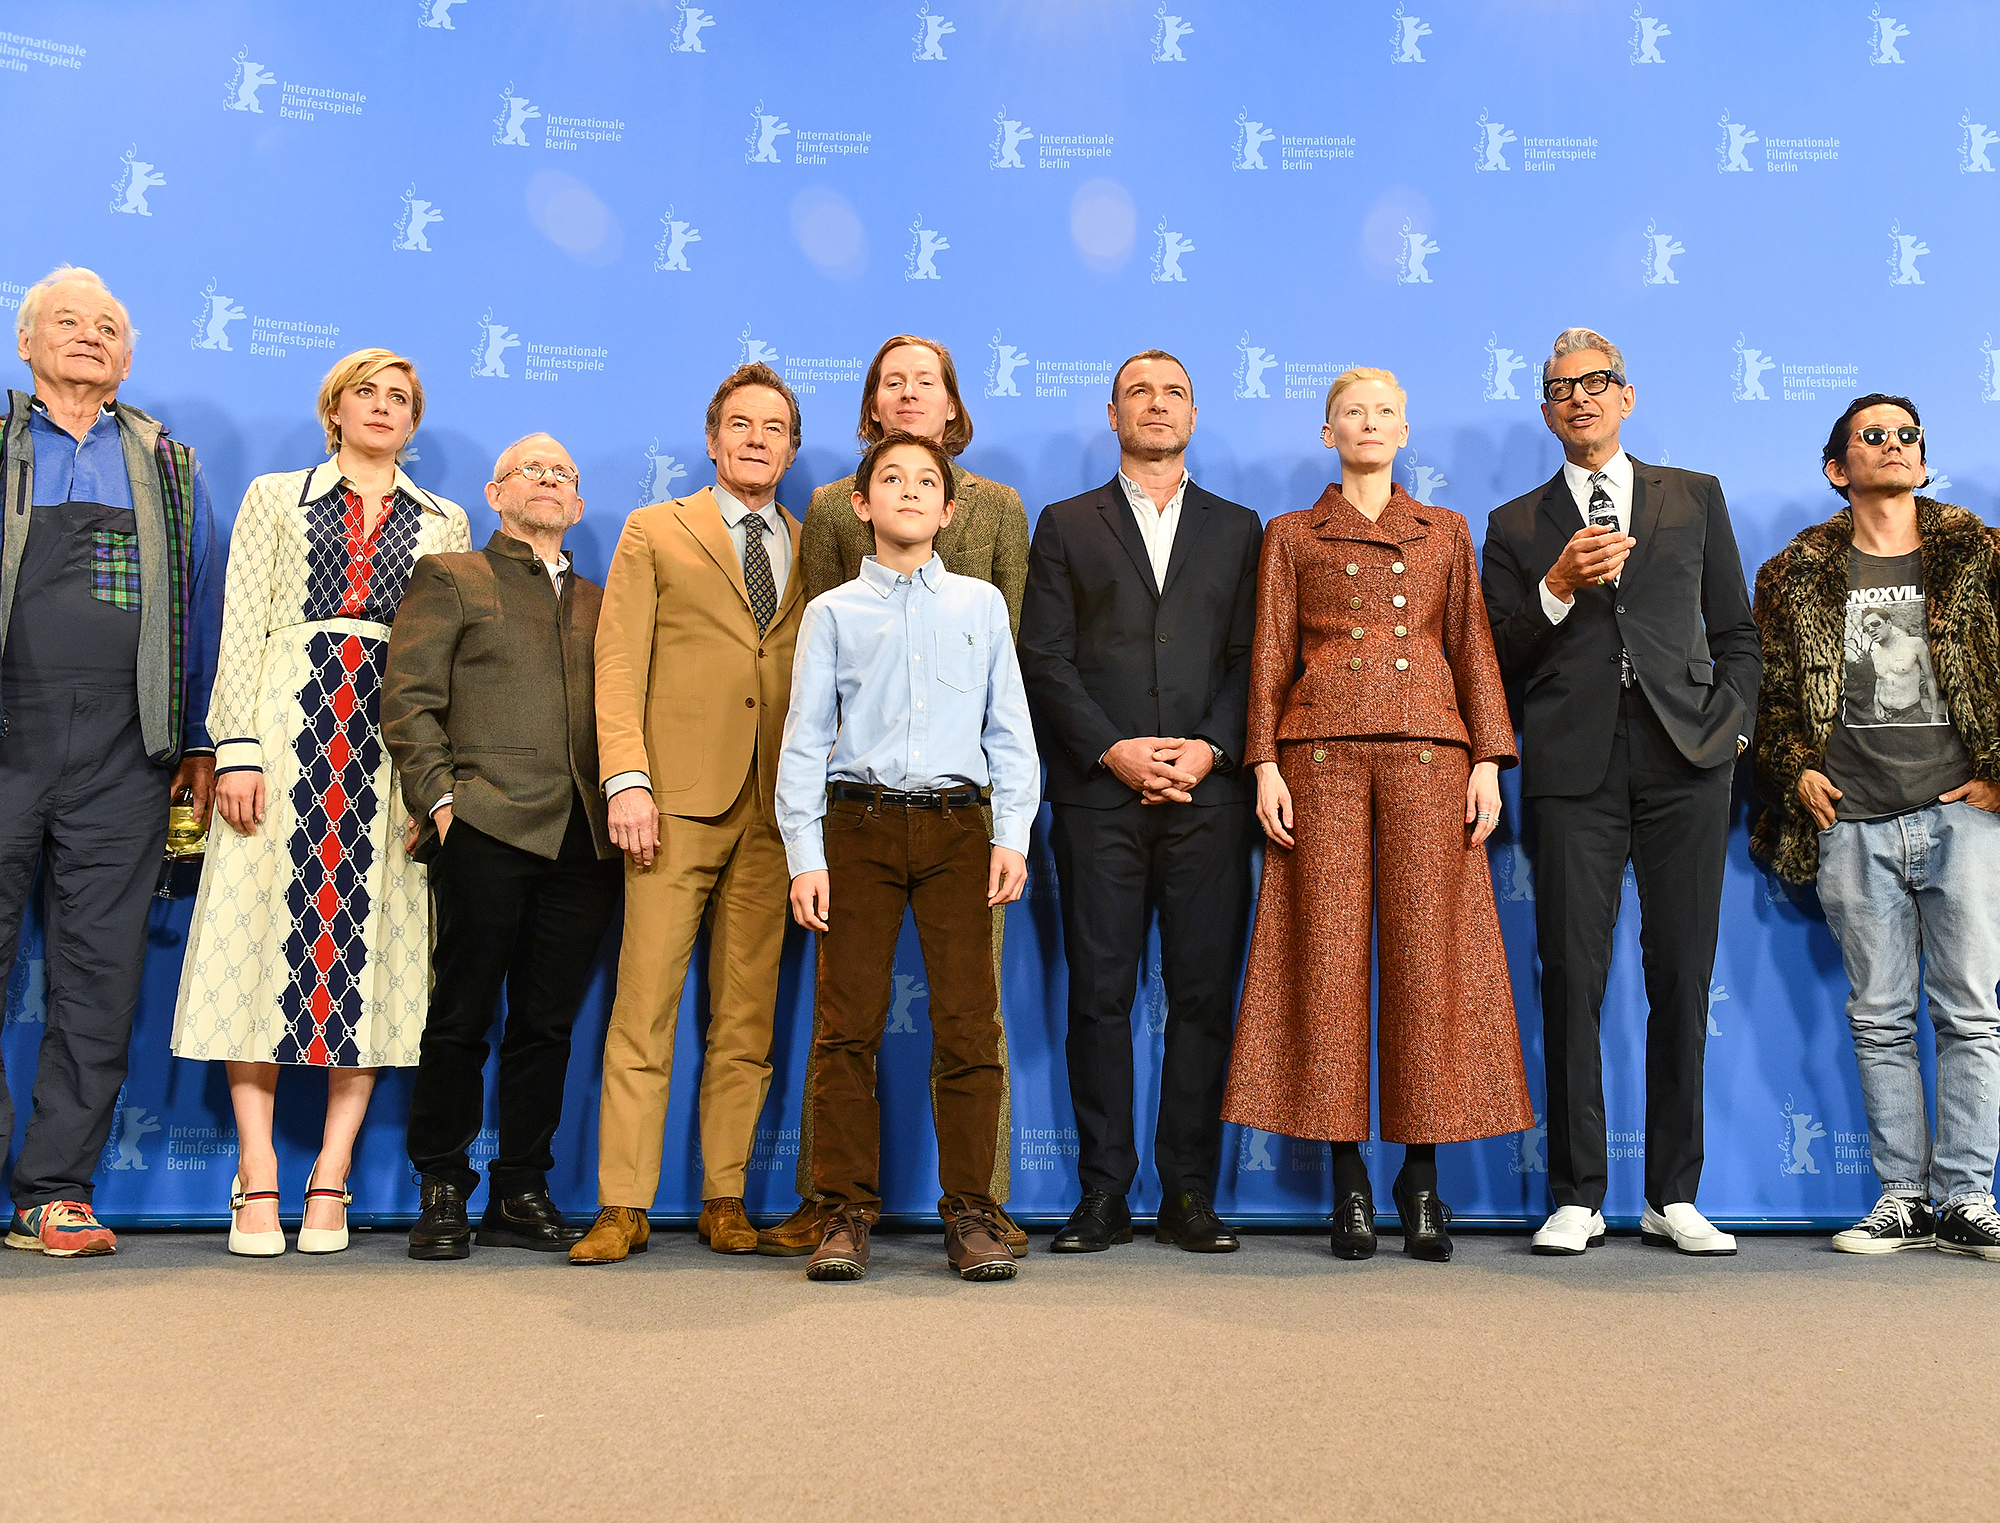 'Isle of Dogs' Photo Call - 68th Berlinale International Film Festival